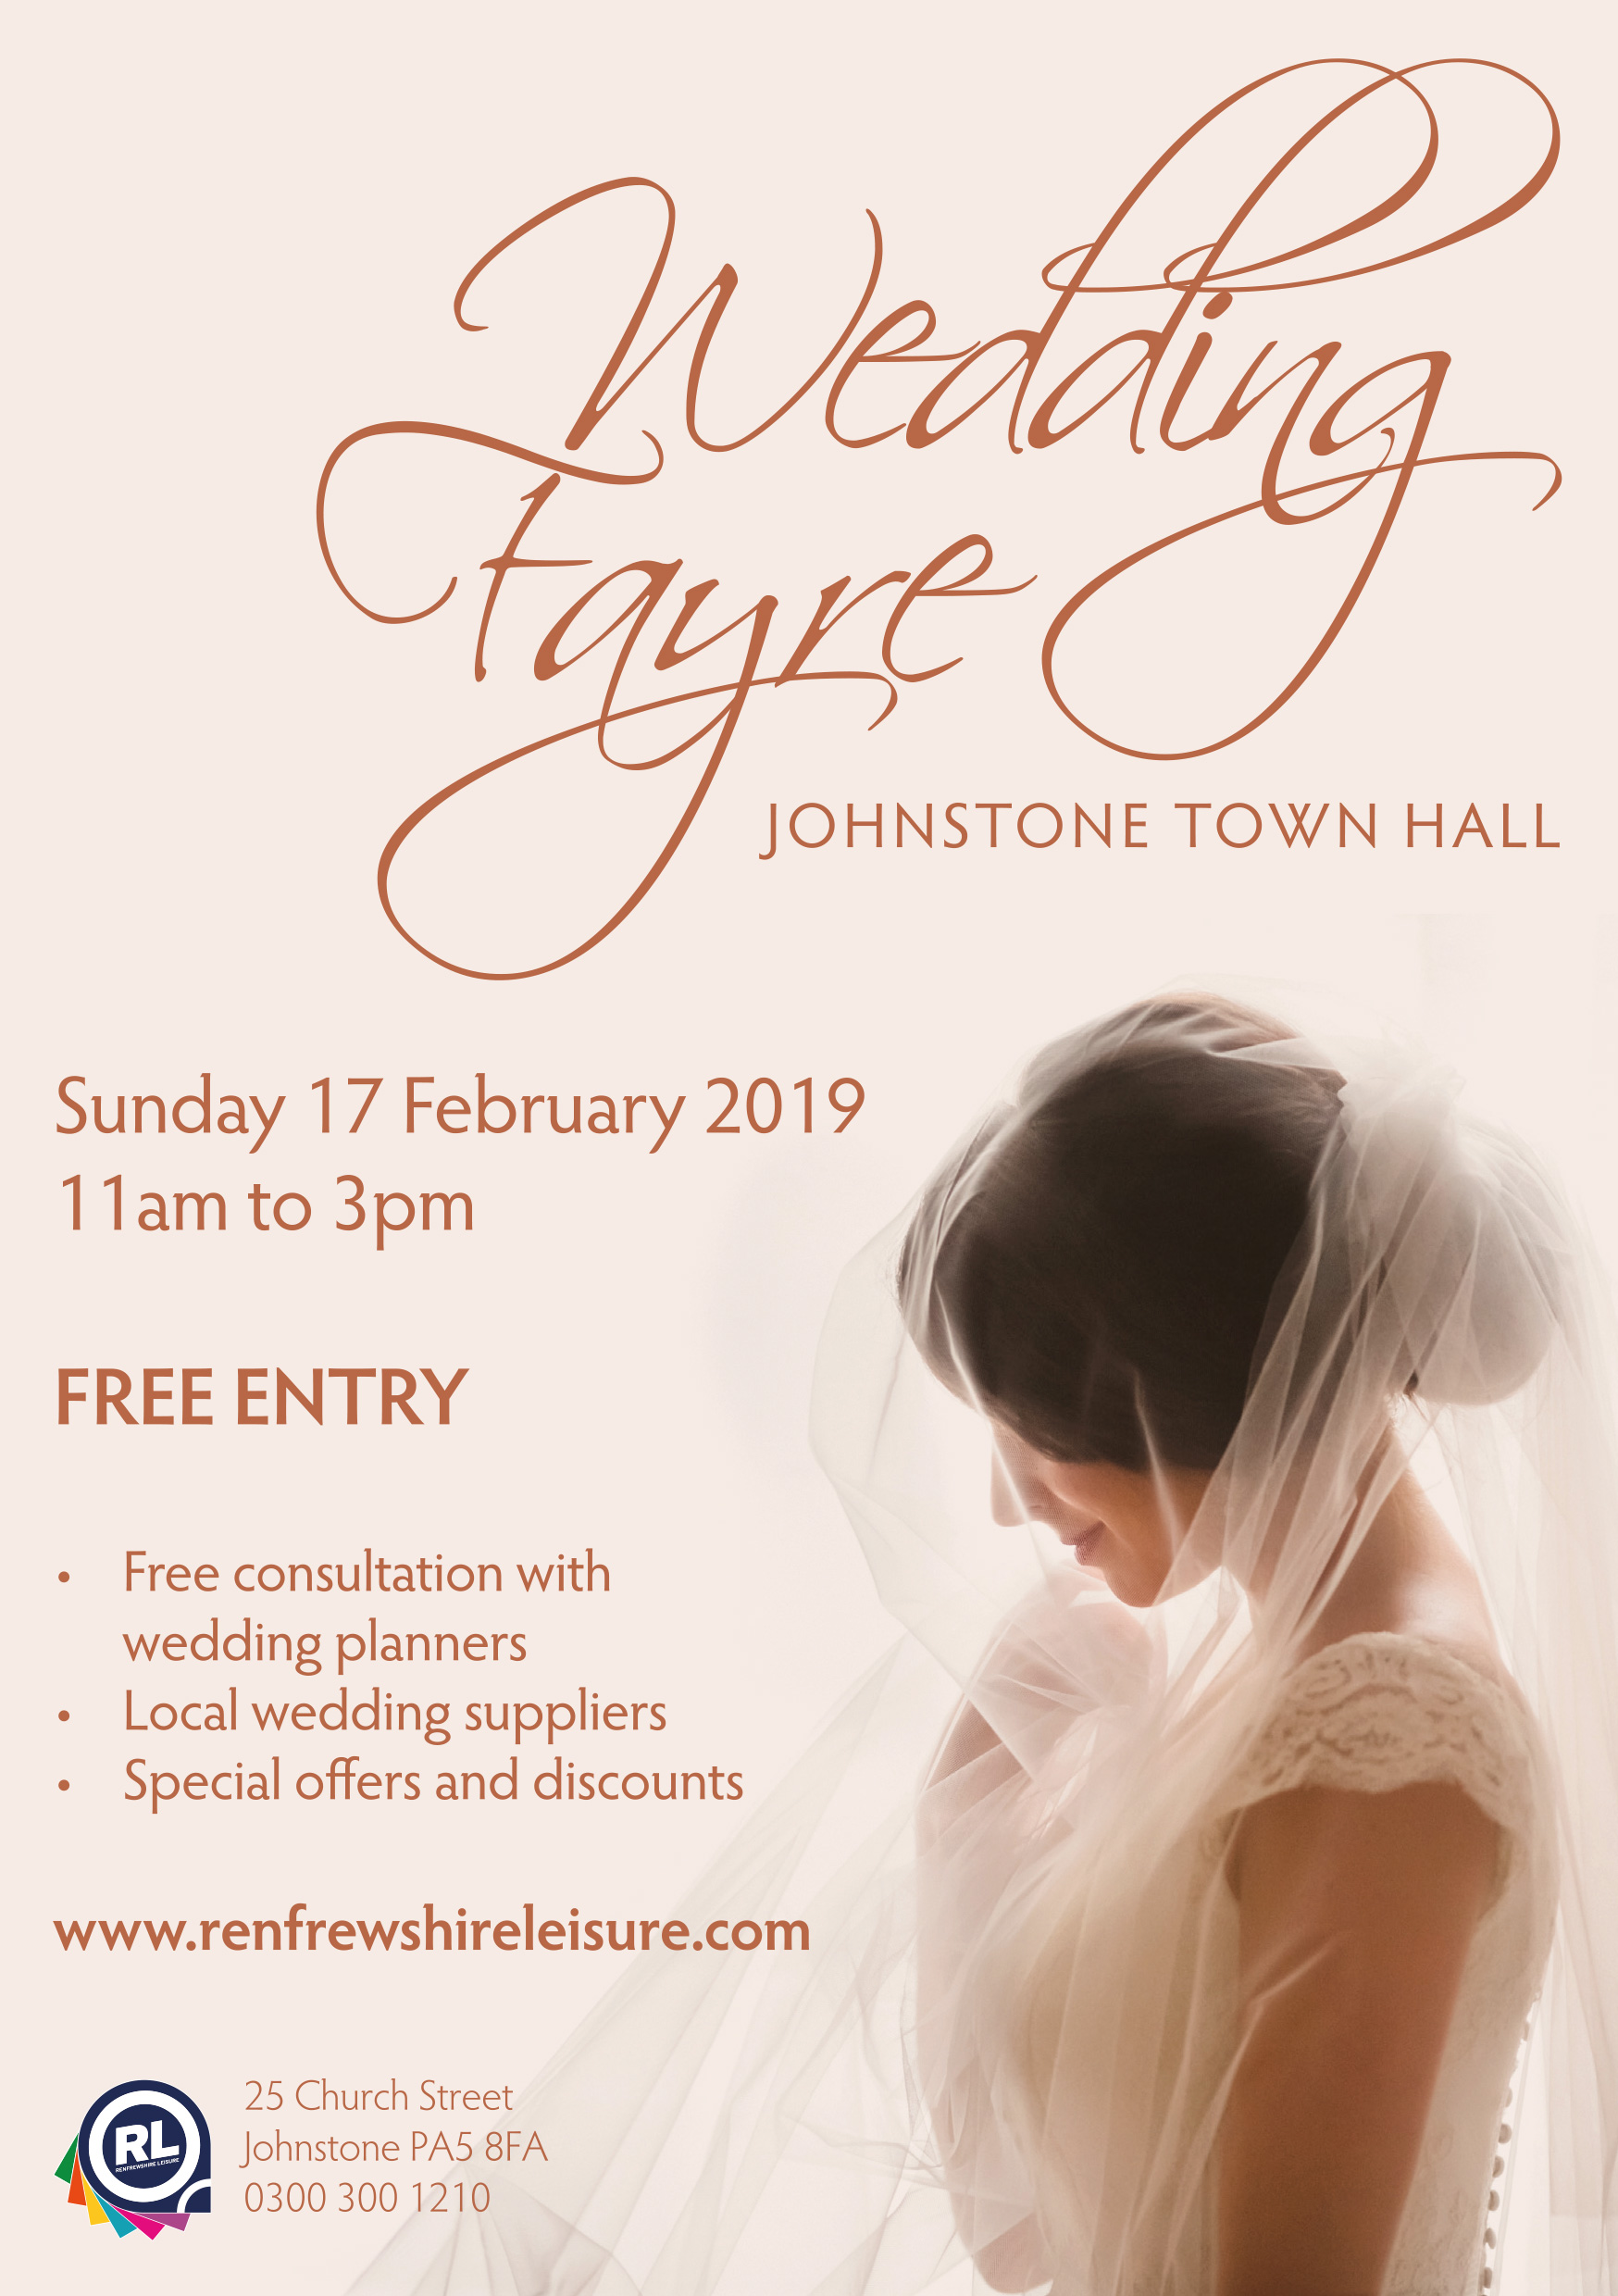 RL-Wedding-Fayre-A5-DS-Flyer-19-01-19-FINAL-1